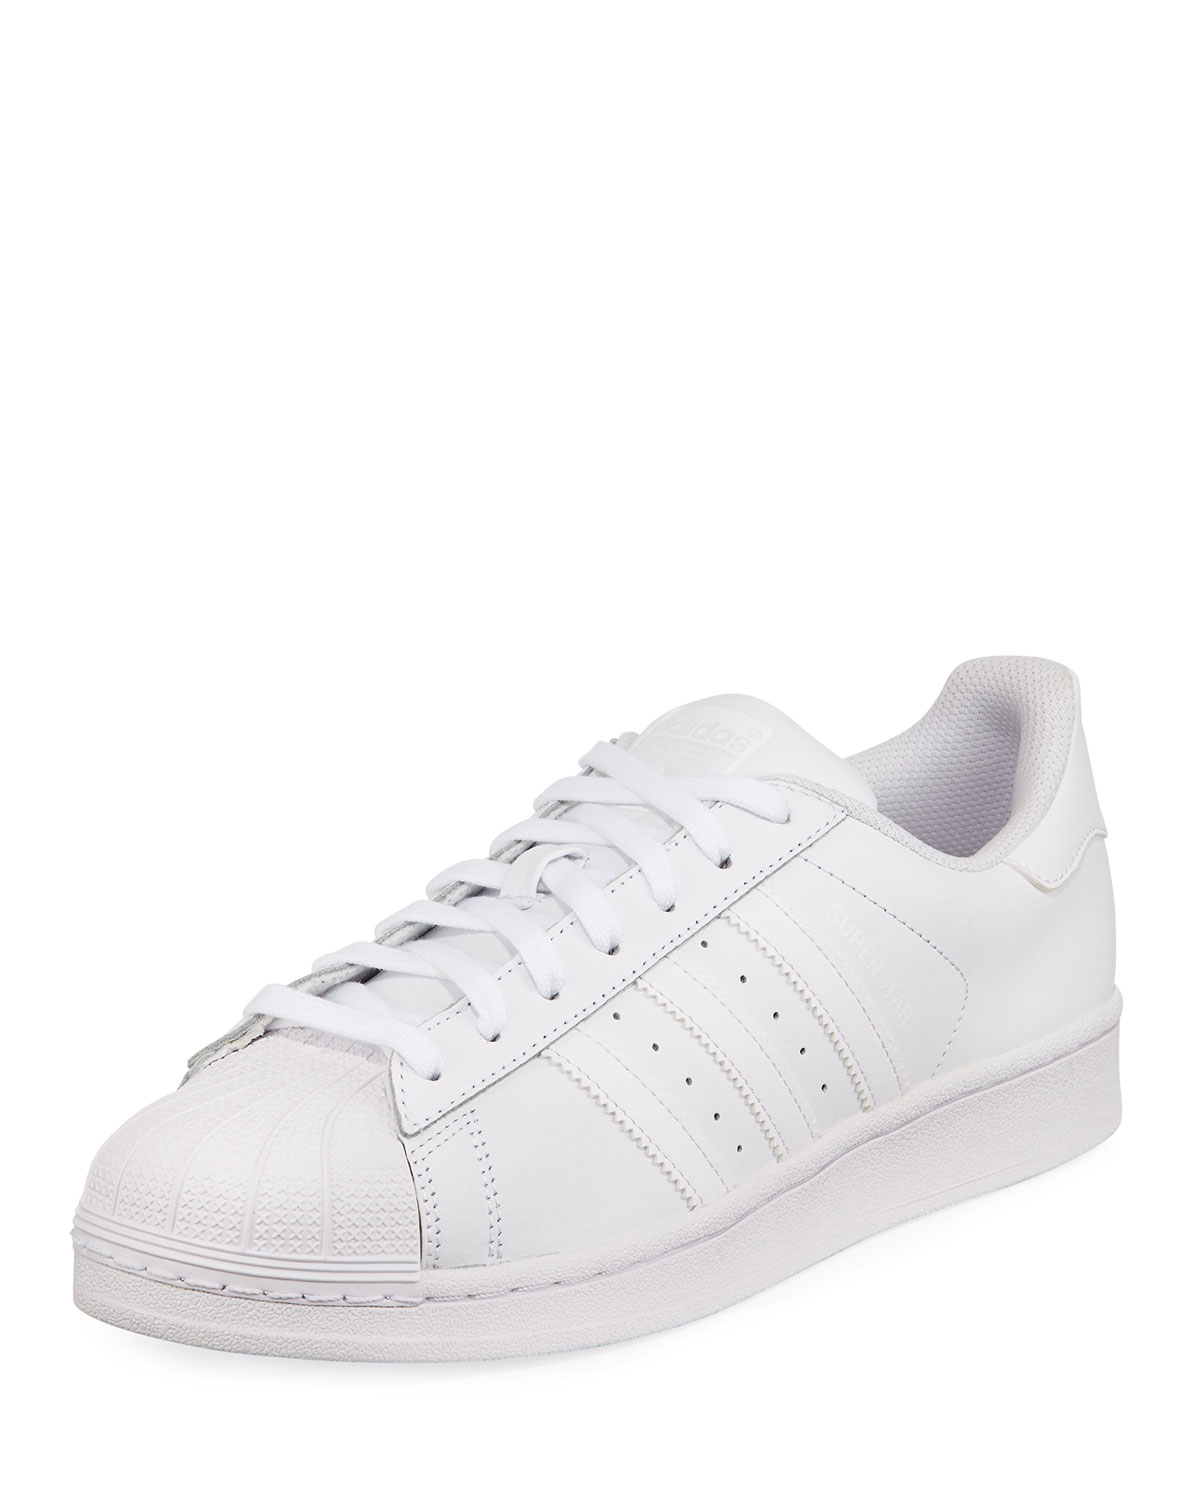 super popular 2dd6f b2953 Men's Superstar Foundation Leather Sneakers, White